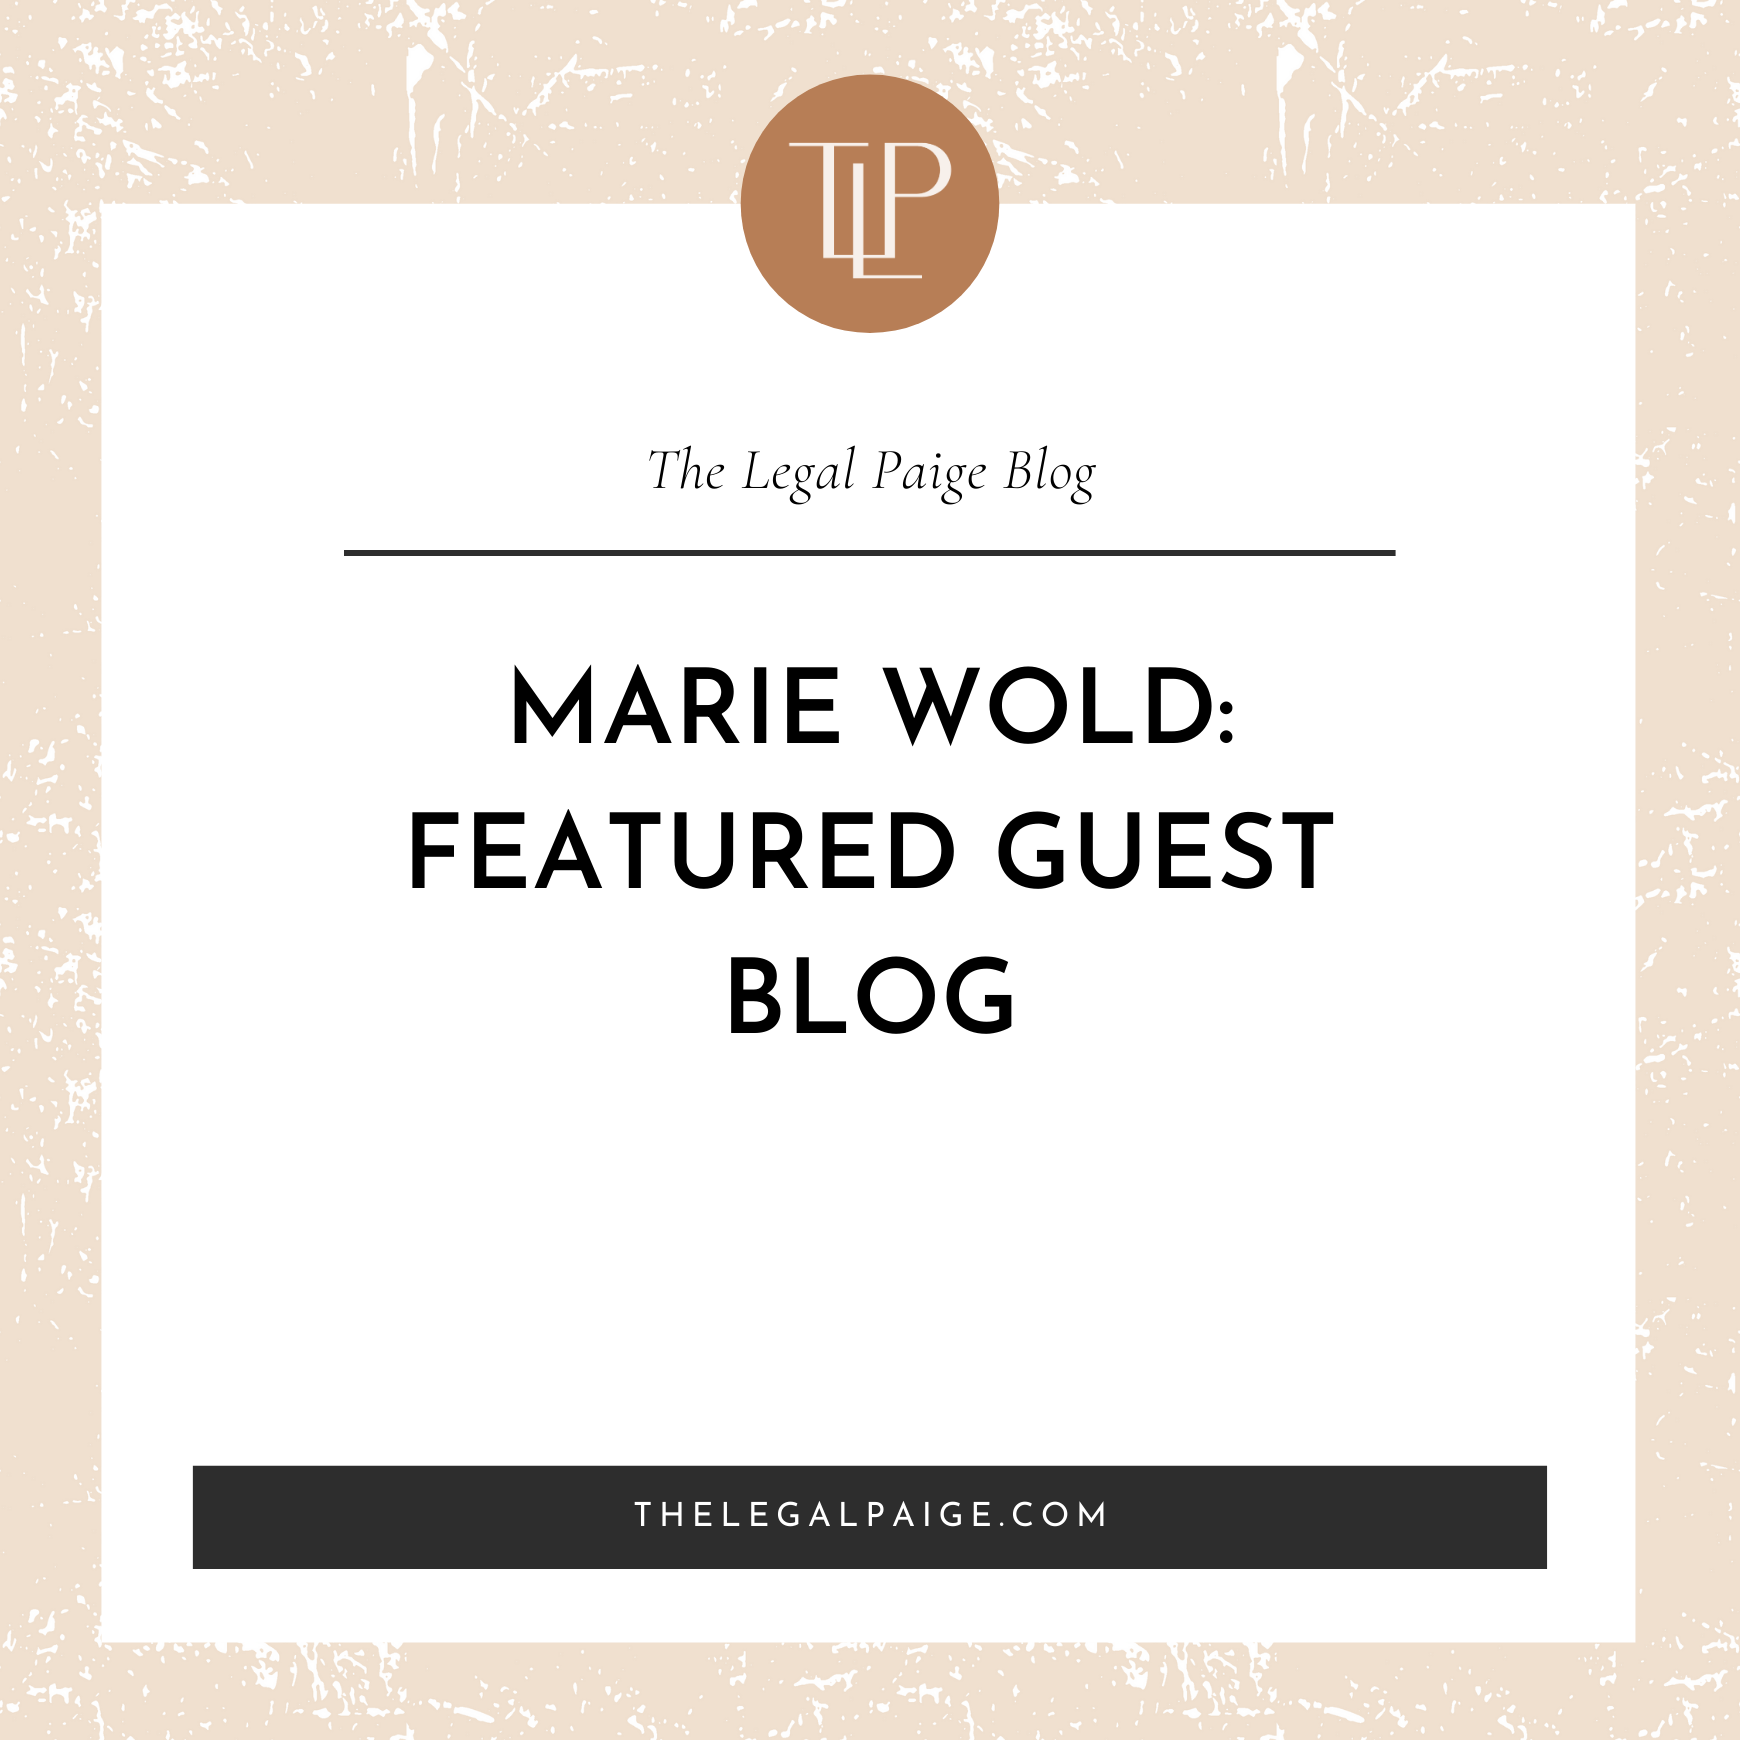 Marie Wold: Featured Guest Blog